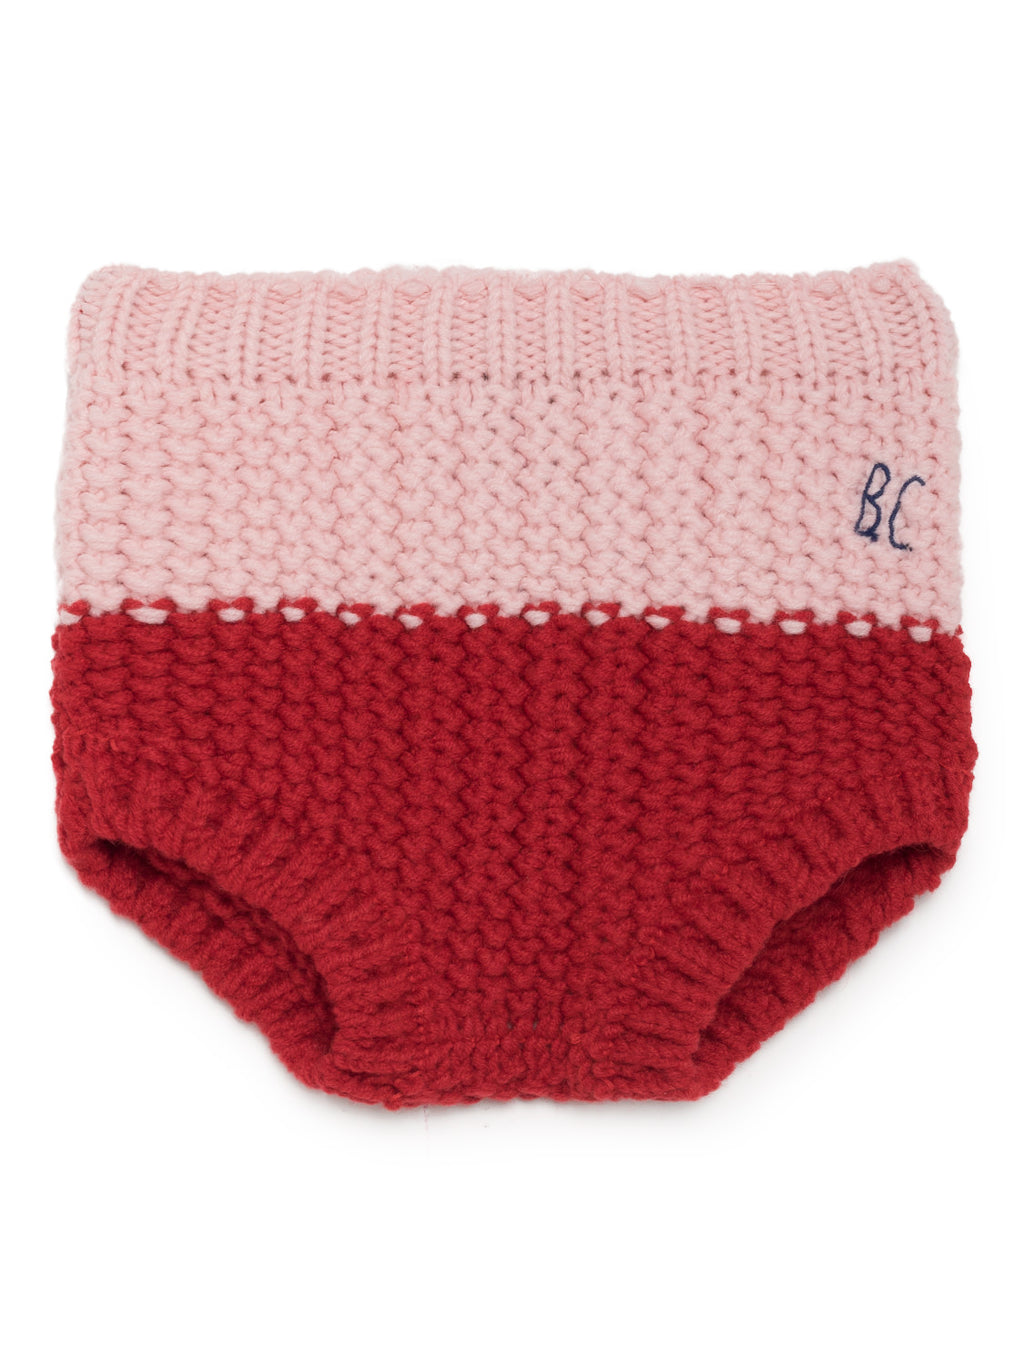 Bobo Choses - Red Knitted Bloomer short